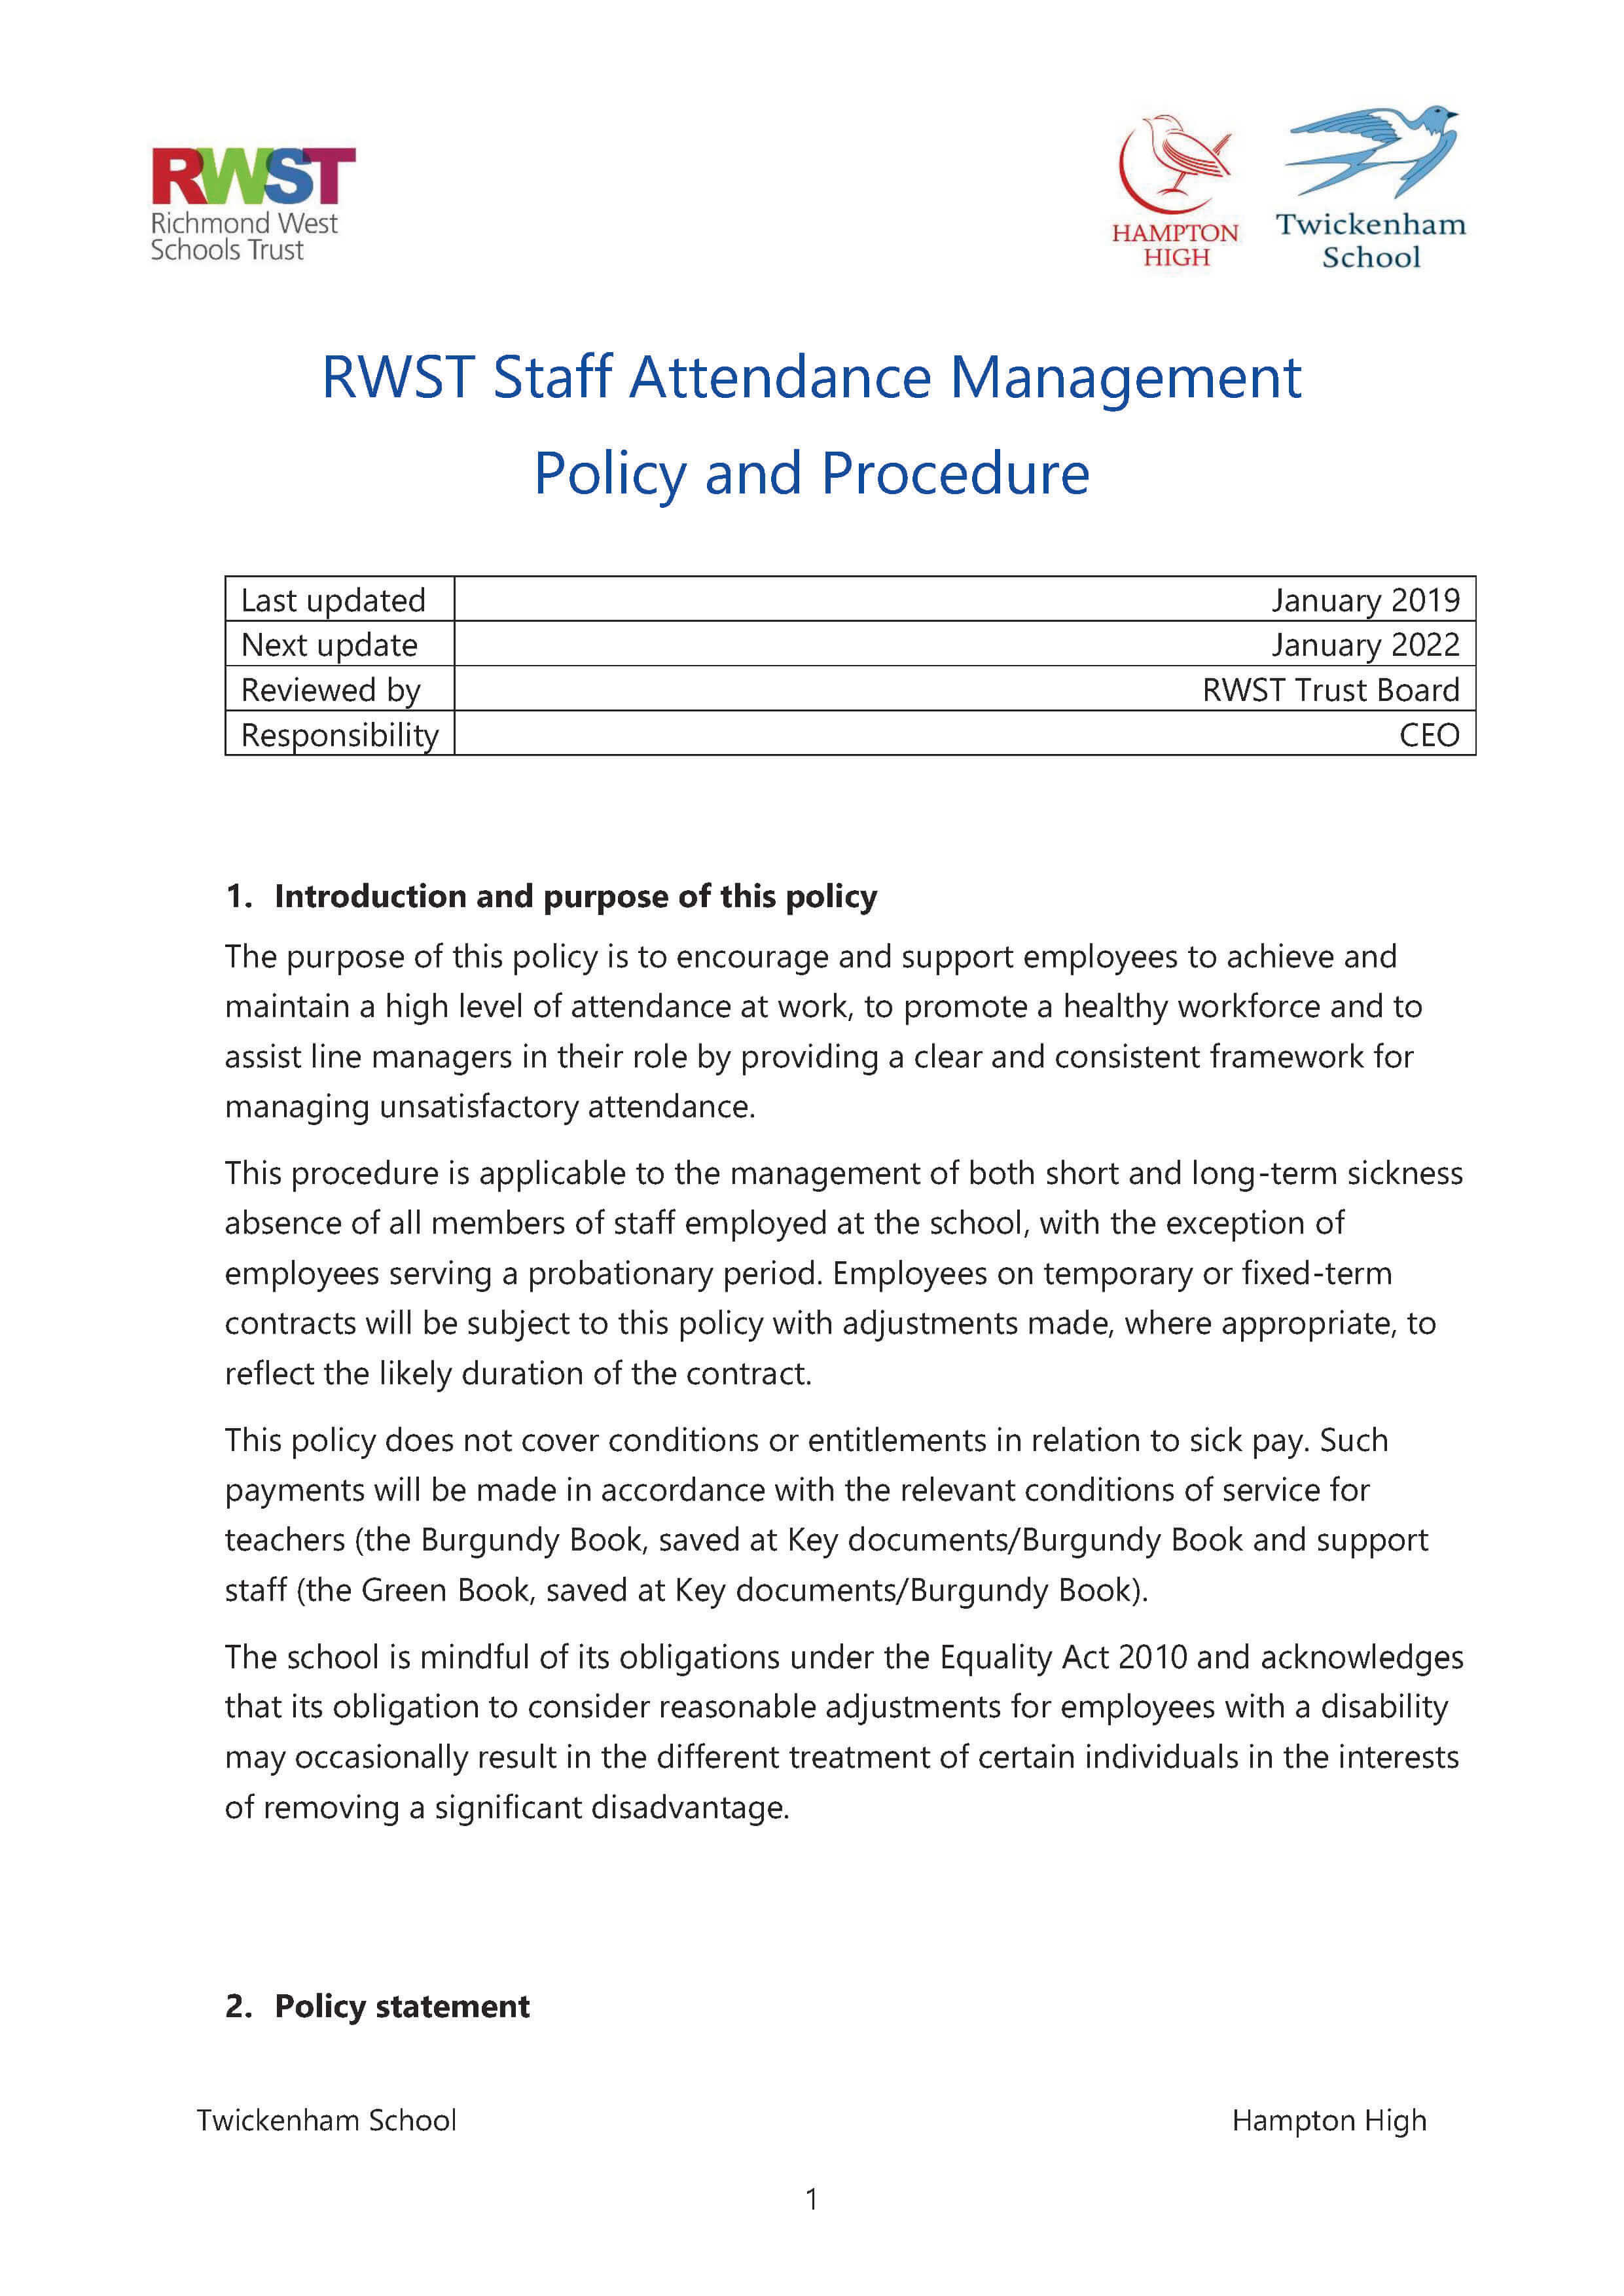 RWST Attendance Management Policy and Procedure